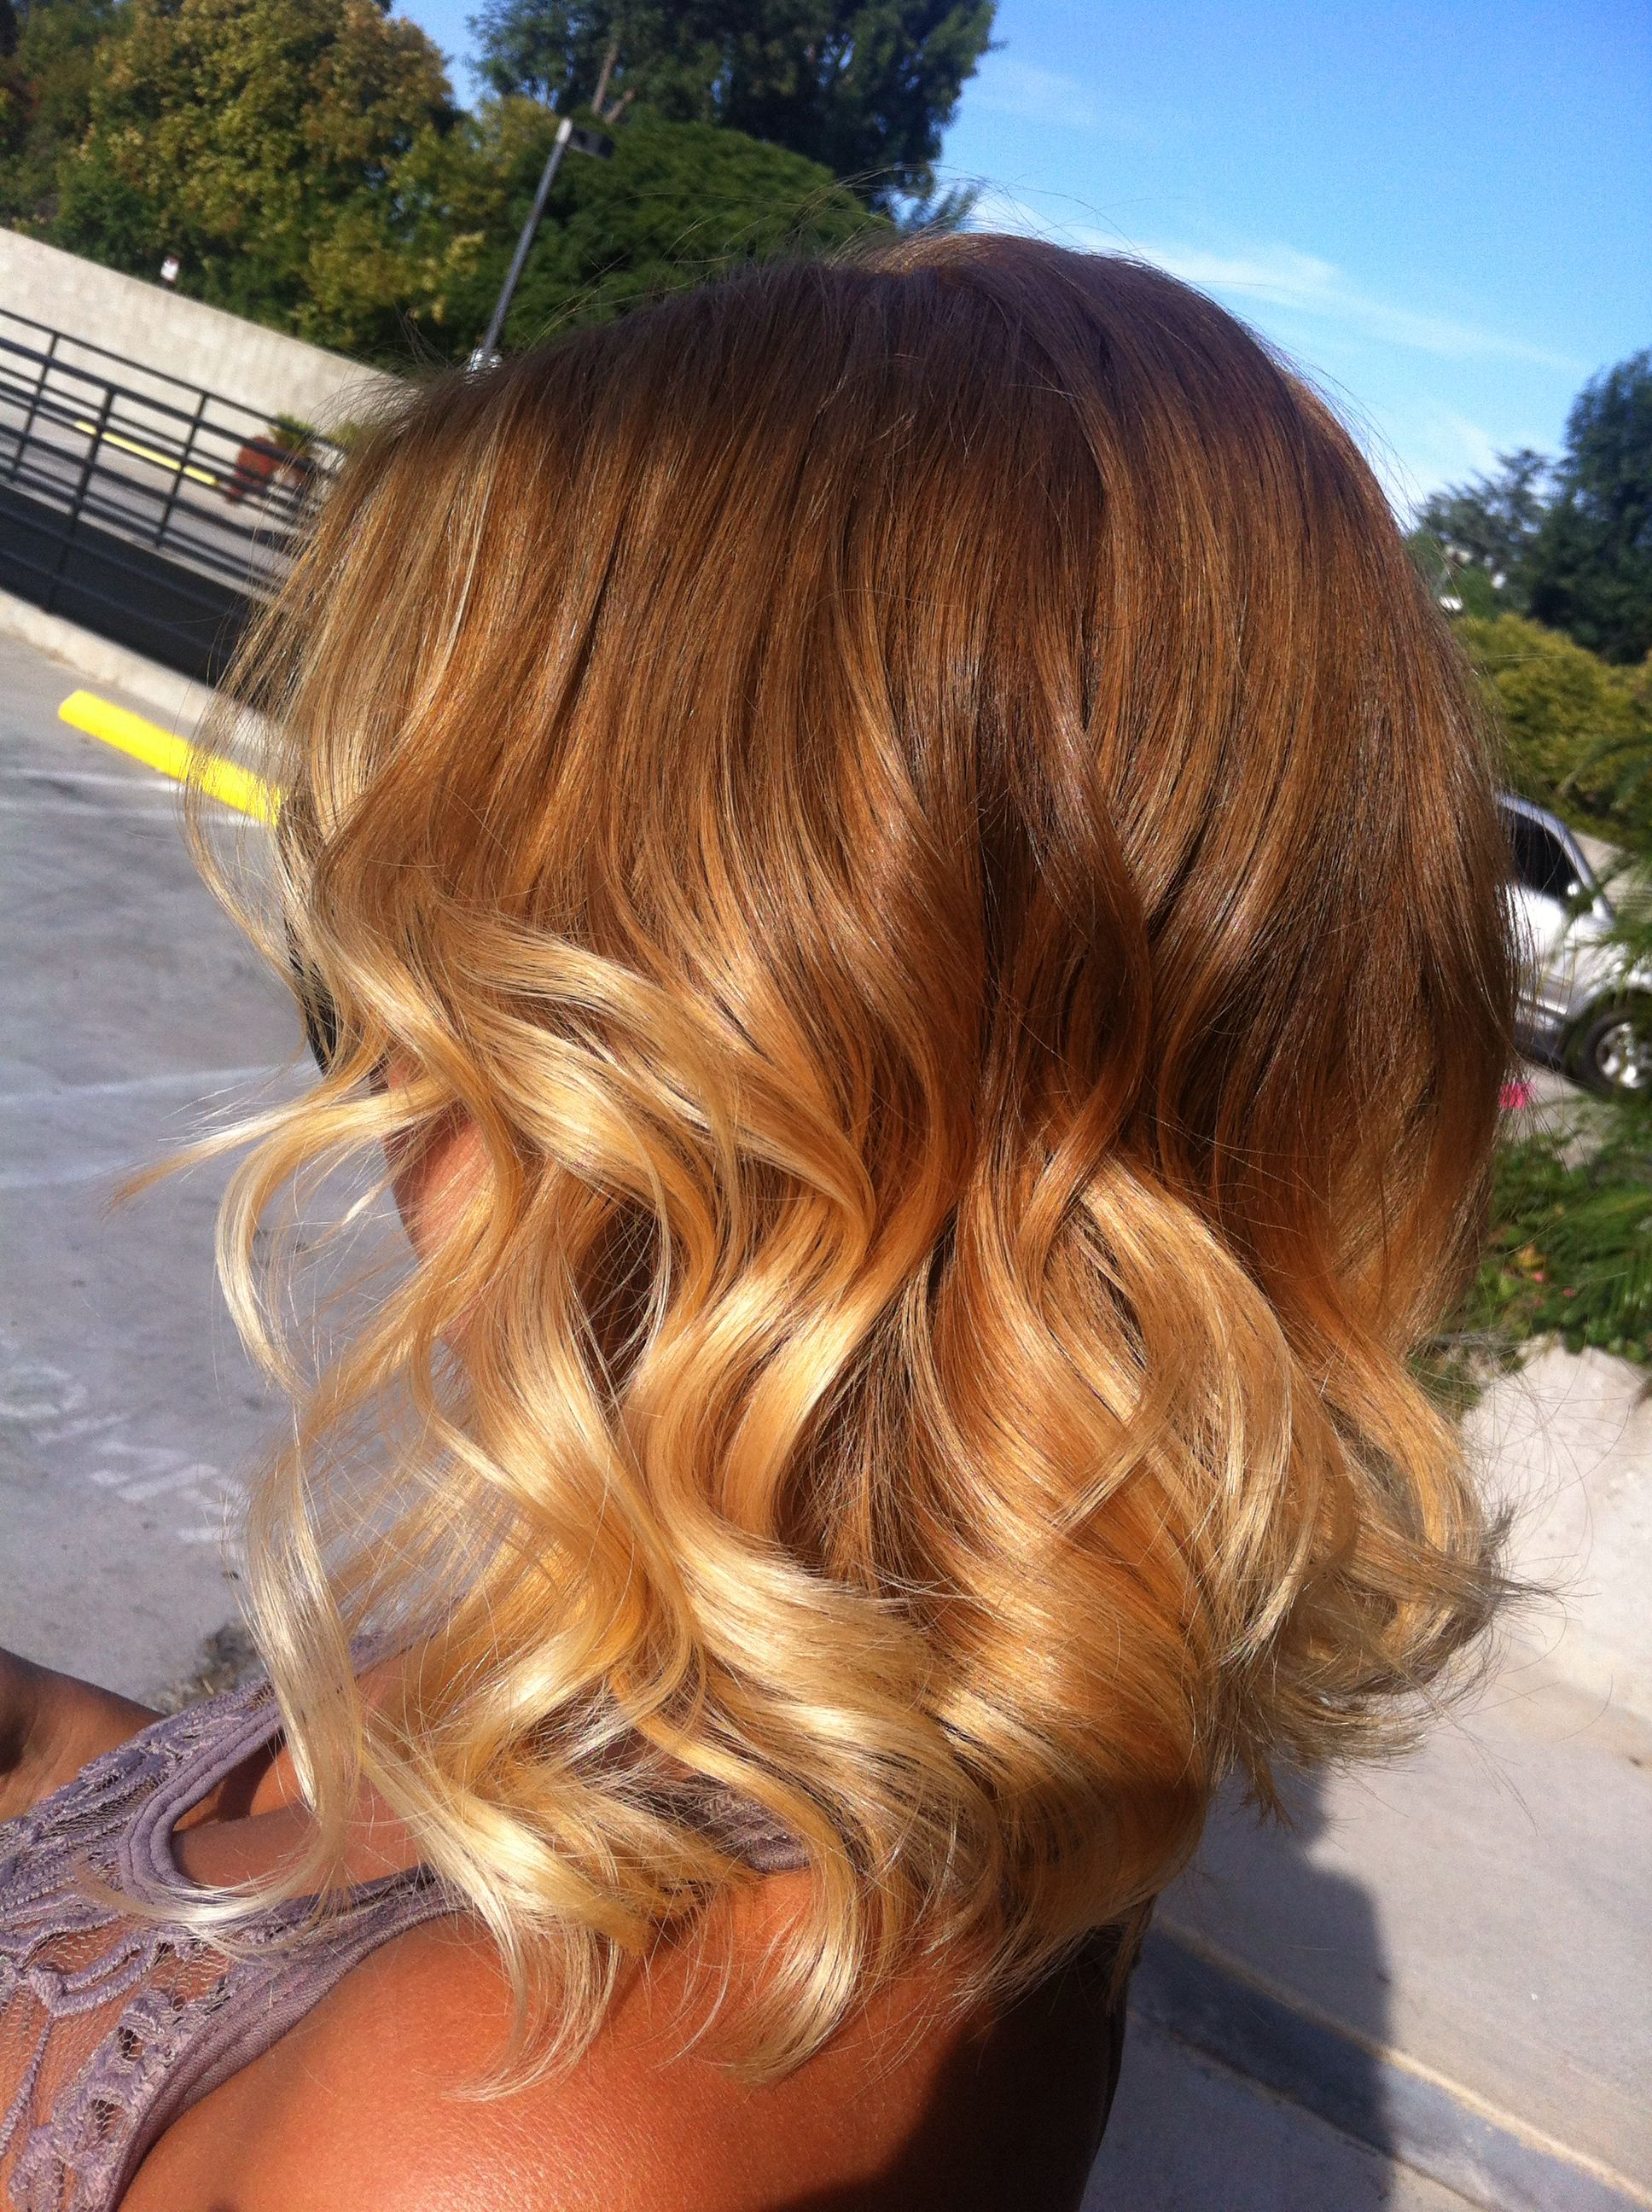 Short hair ombré blonde hair projets à essayer pinterest